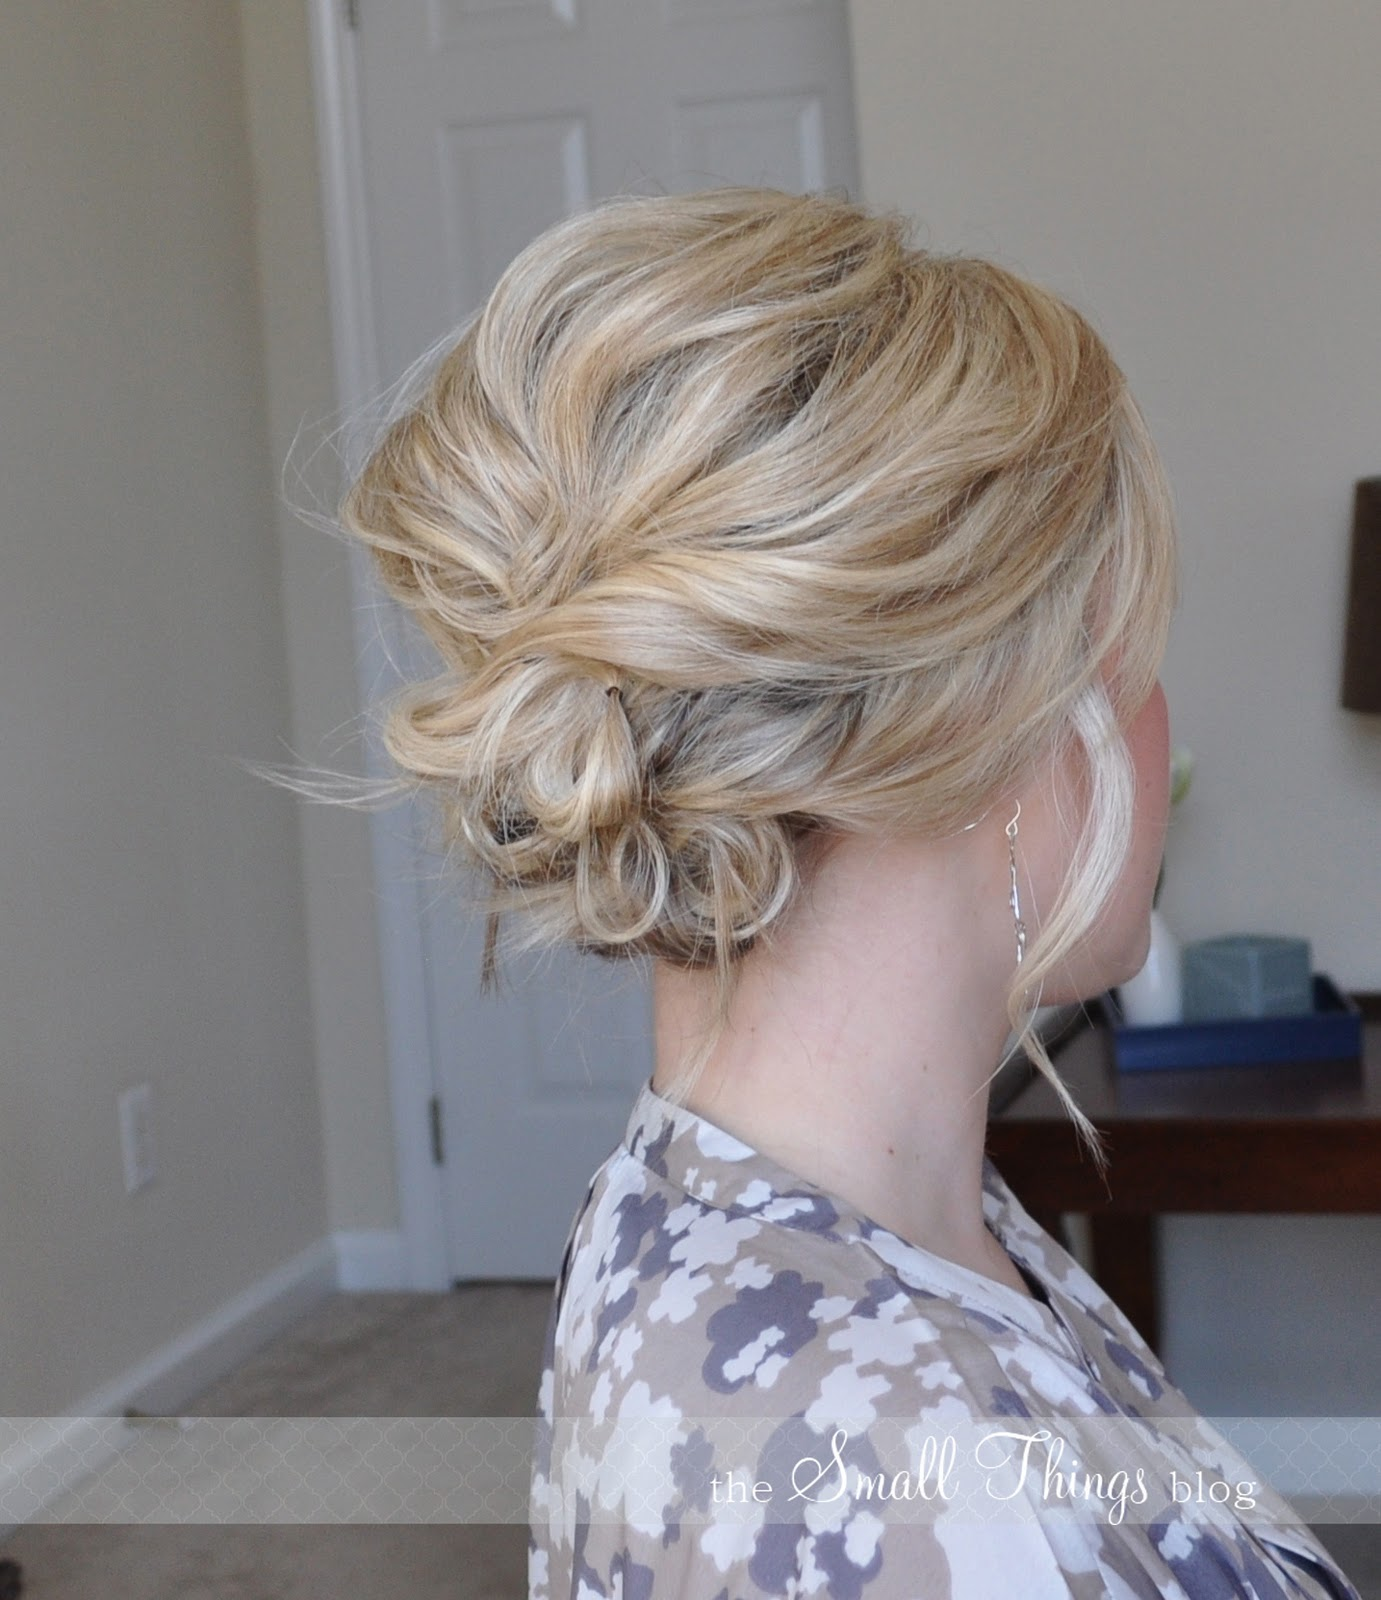 Medium Length Wedding Hairstyles: The Small Things Blog